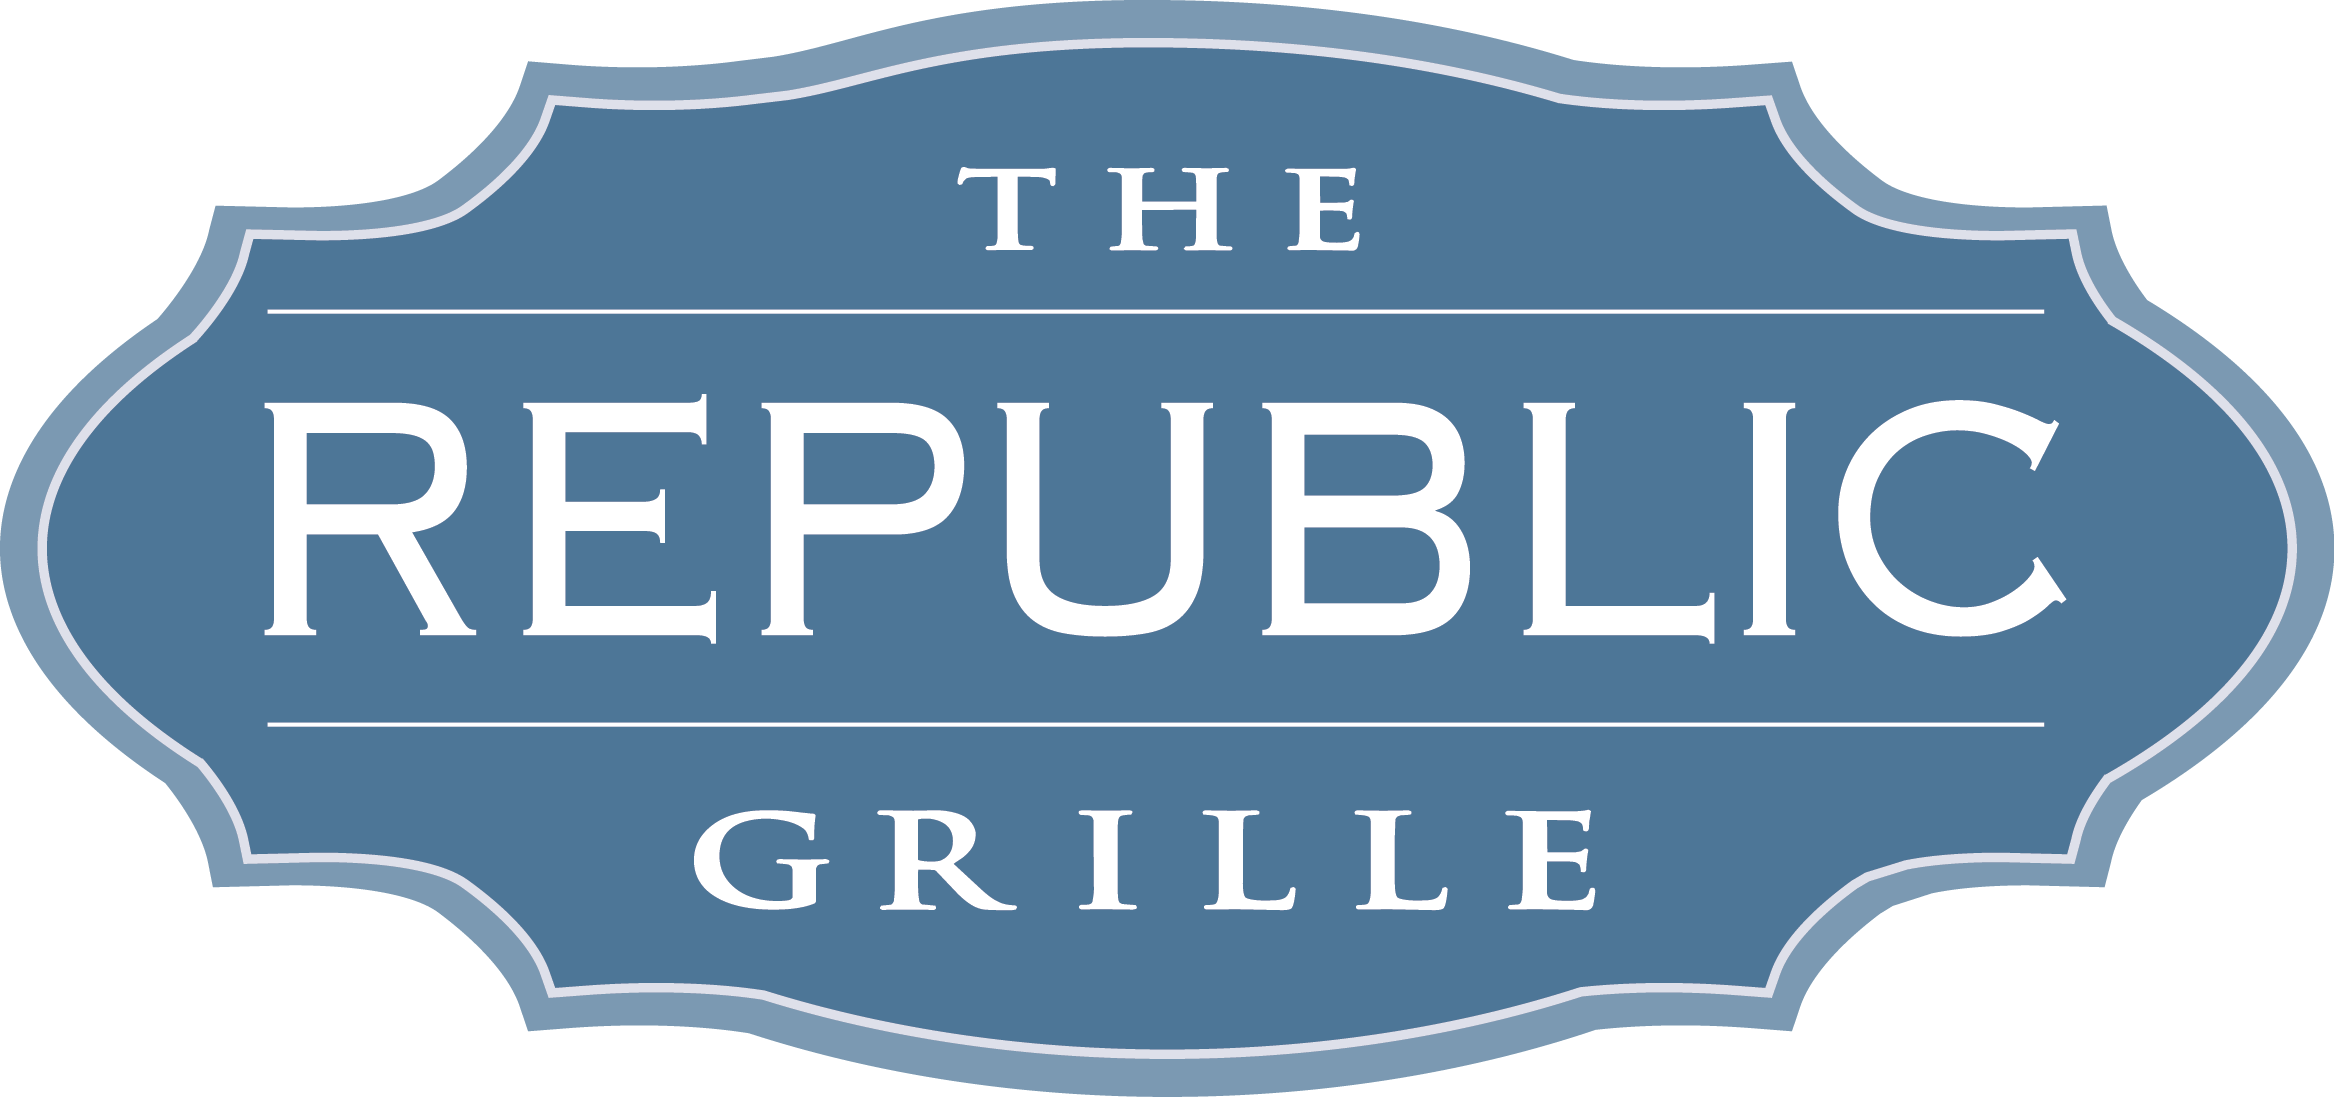 TheRepublicGrille logo blue cropped1